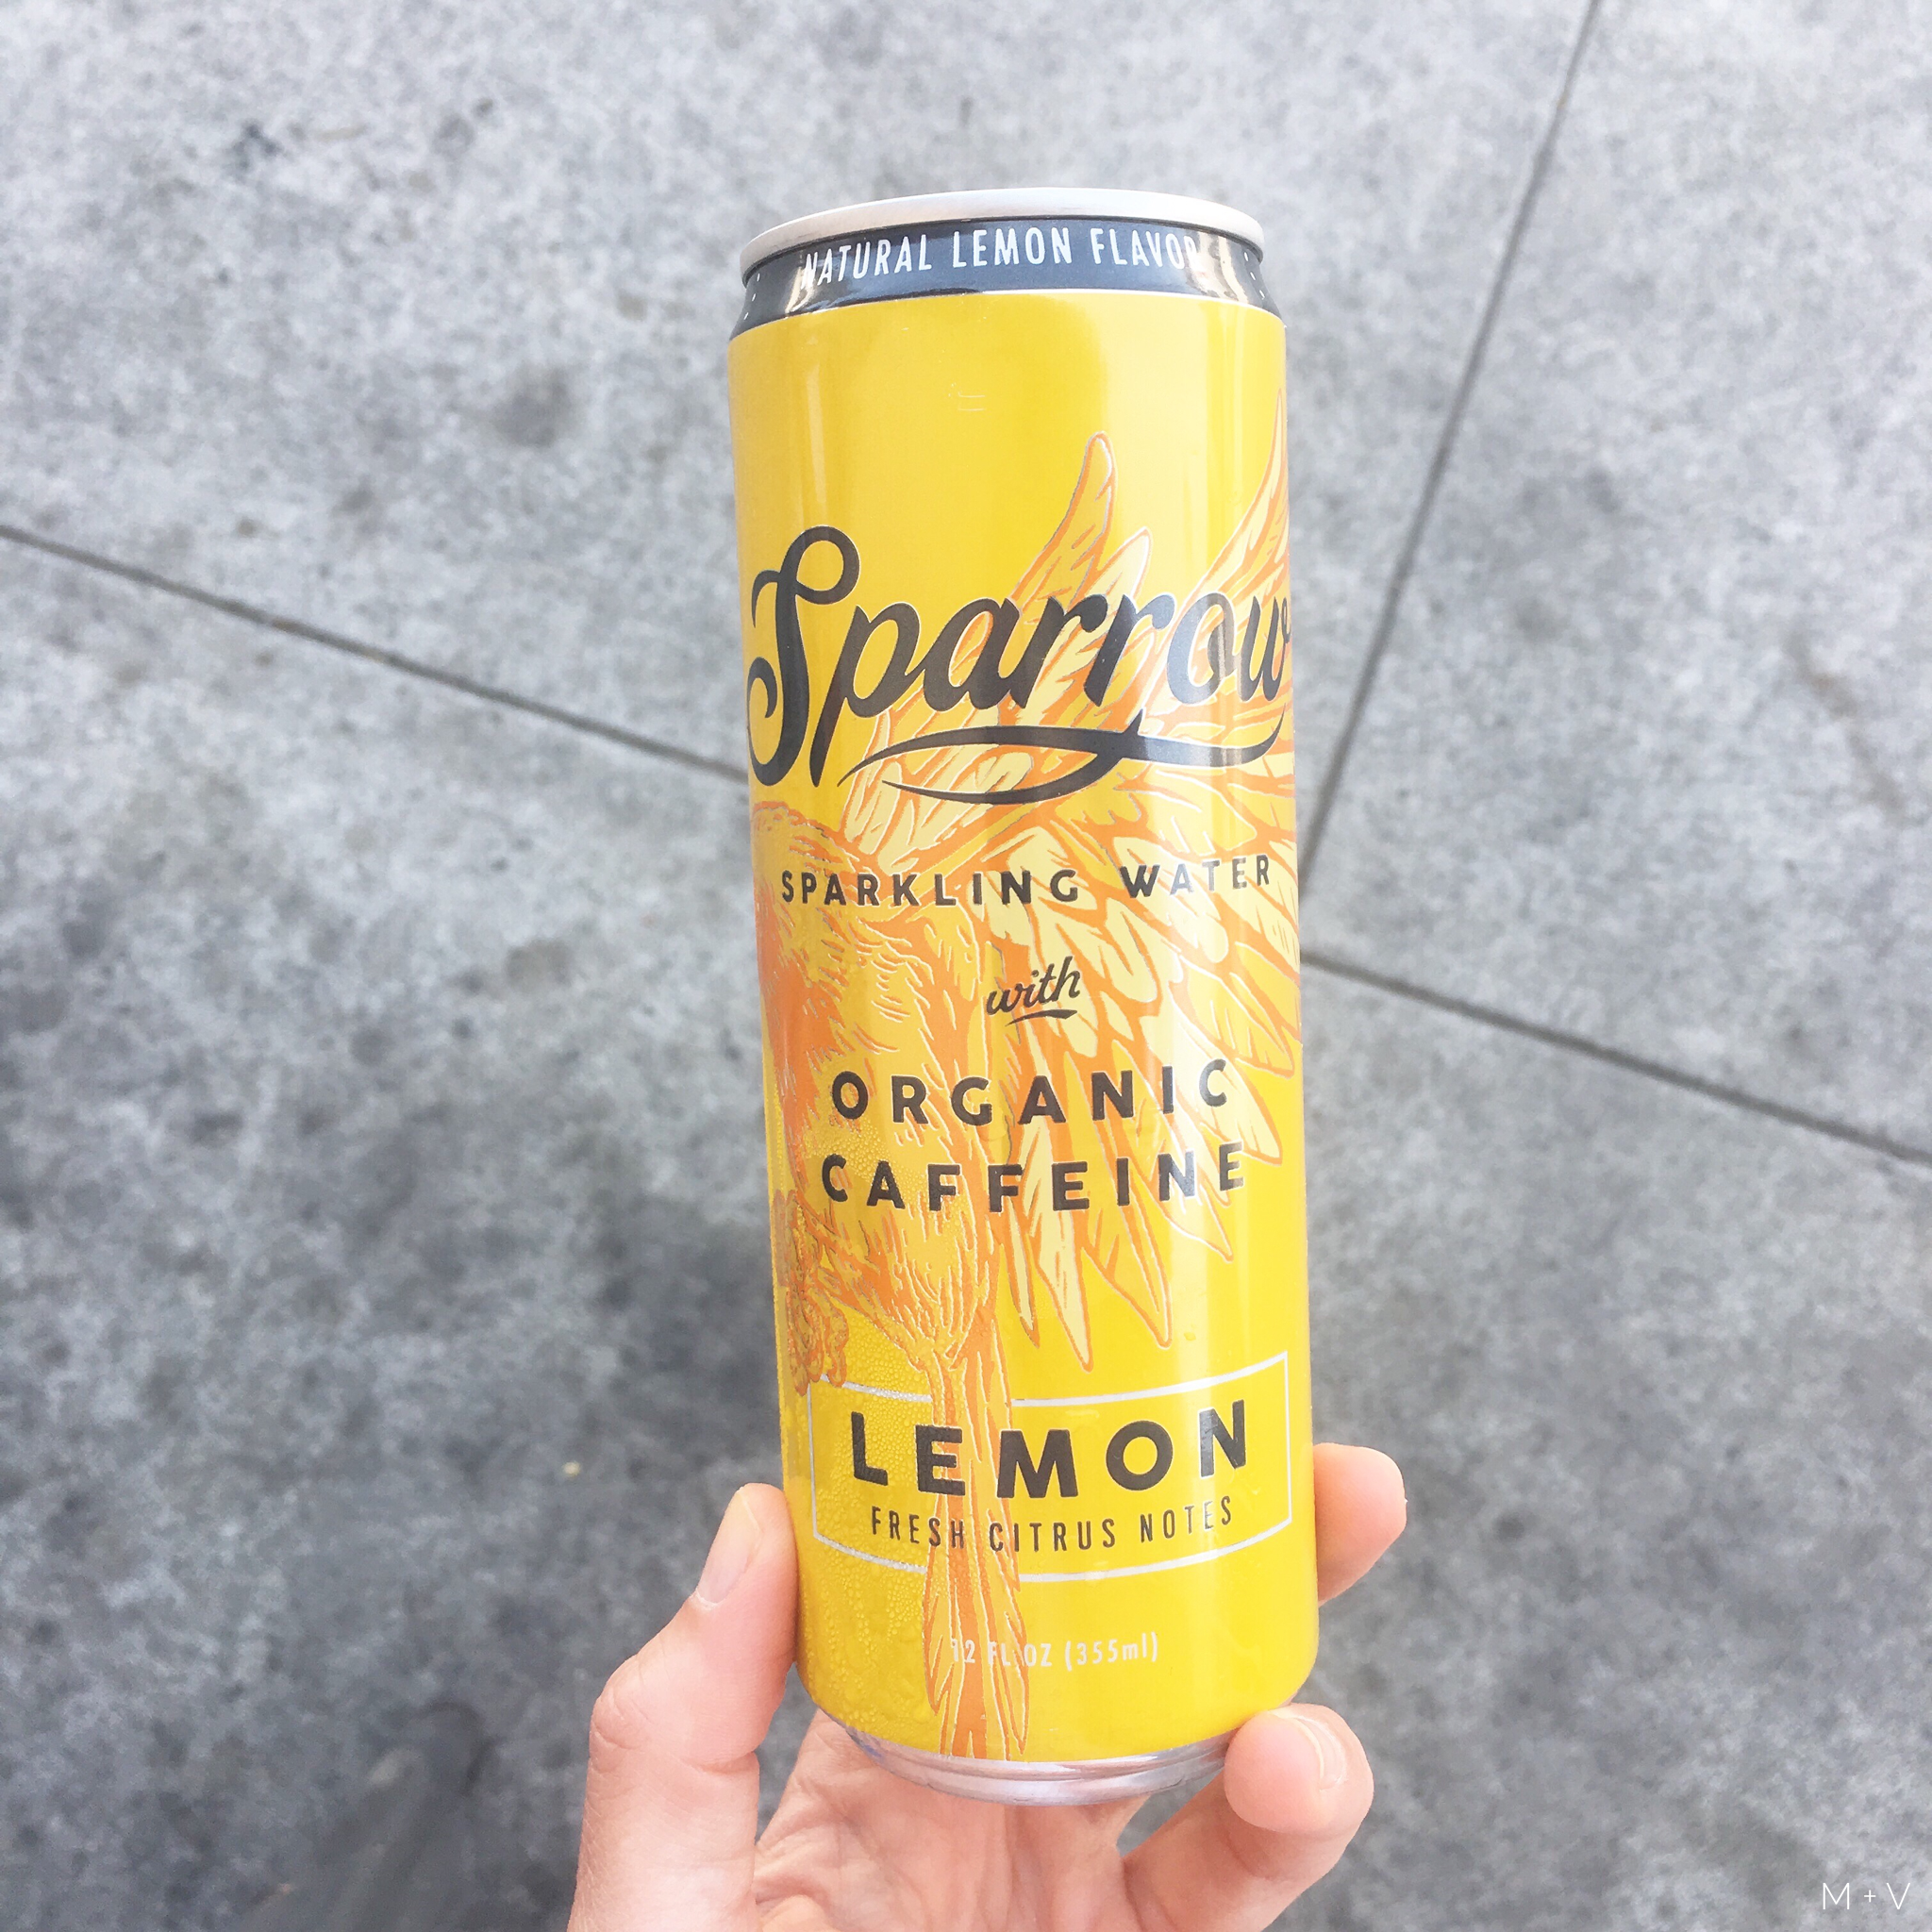 Meet Sparrow, the sparkling water that's changing the